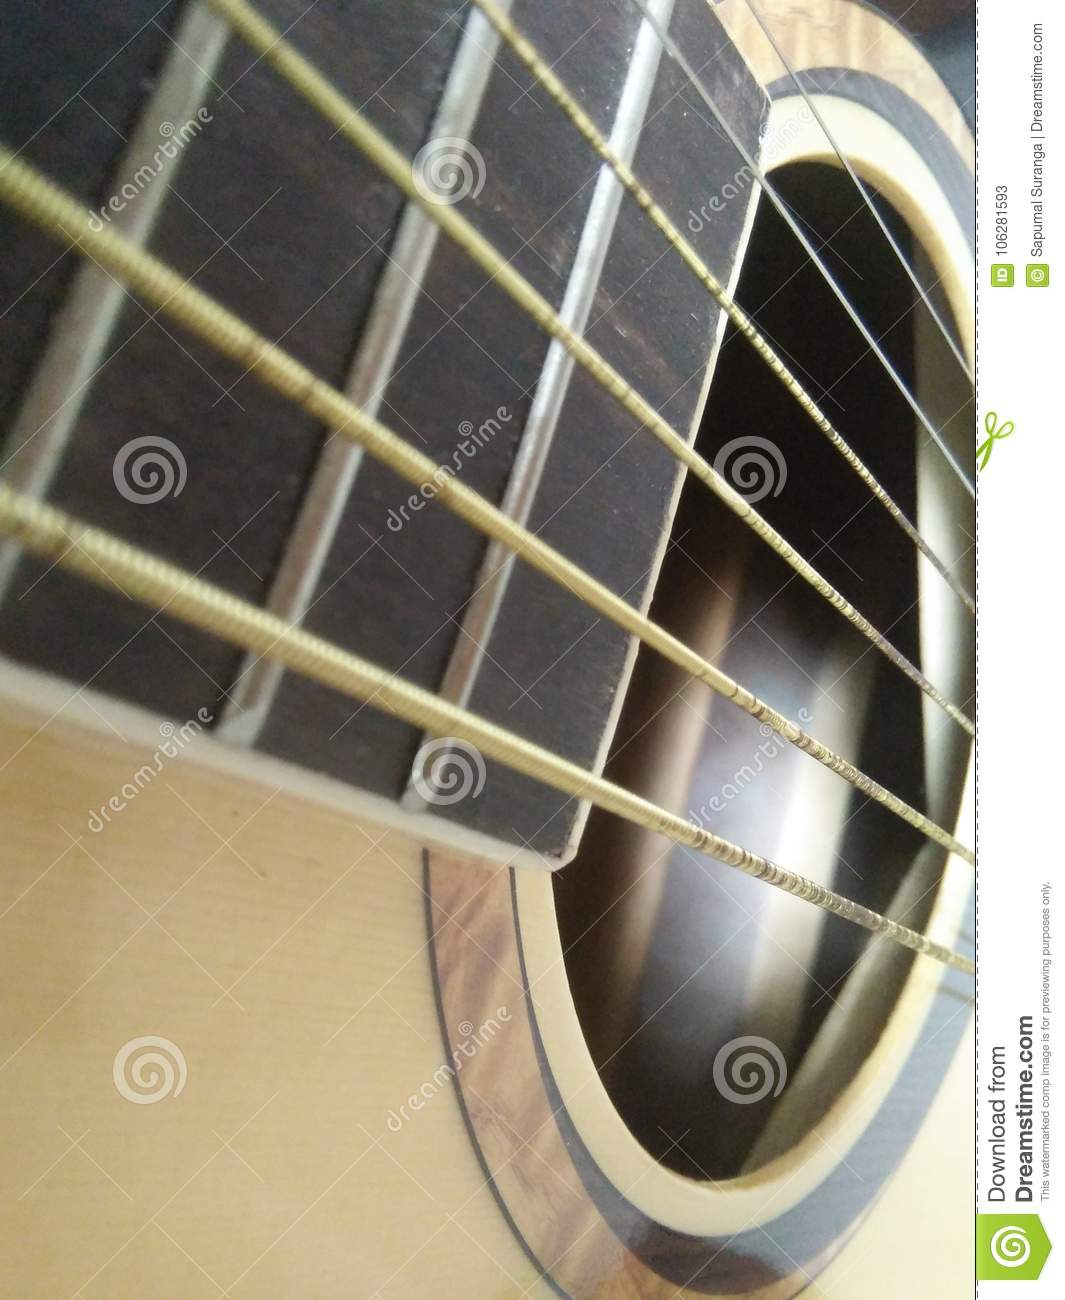 Box Guitar strings music stock image  Image of very - 106281593